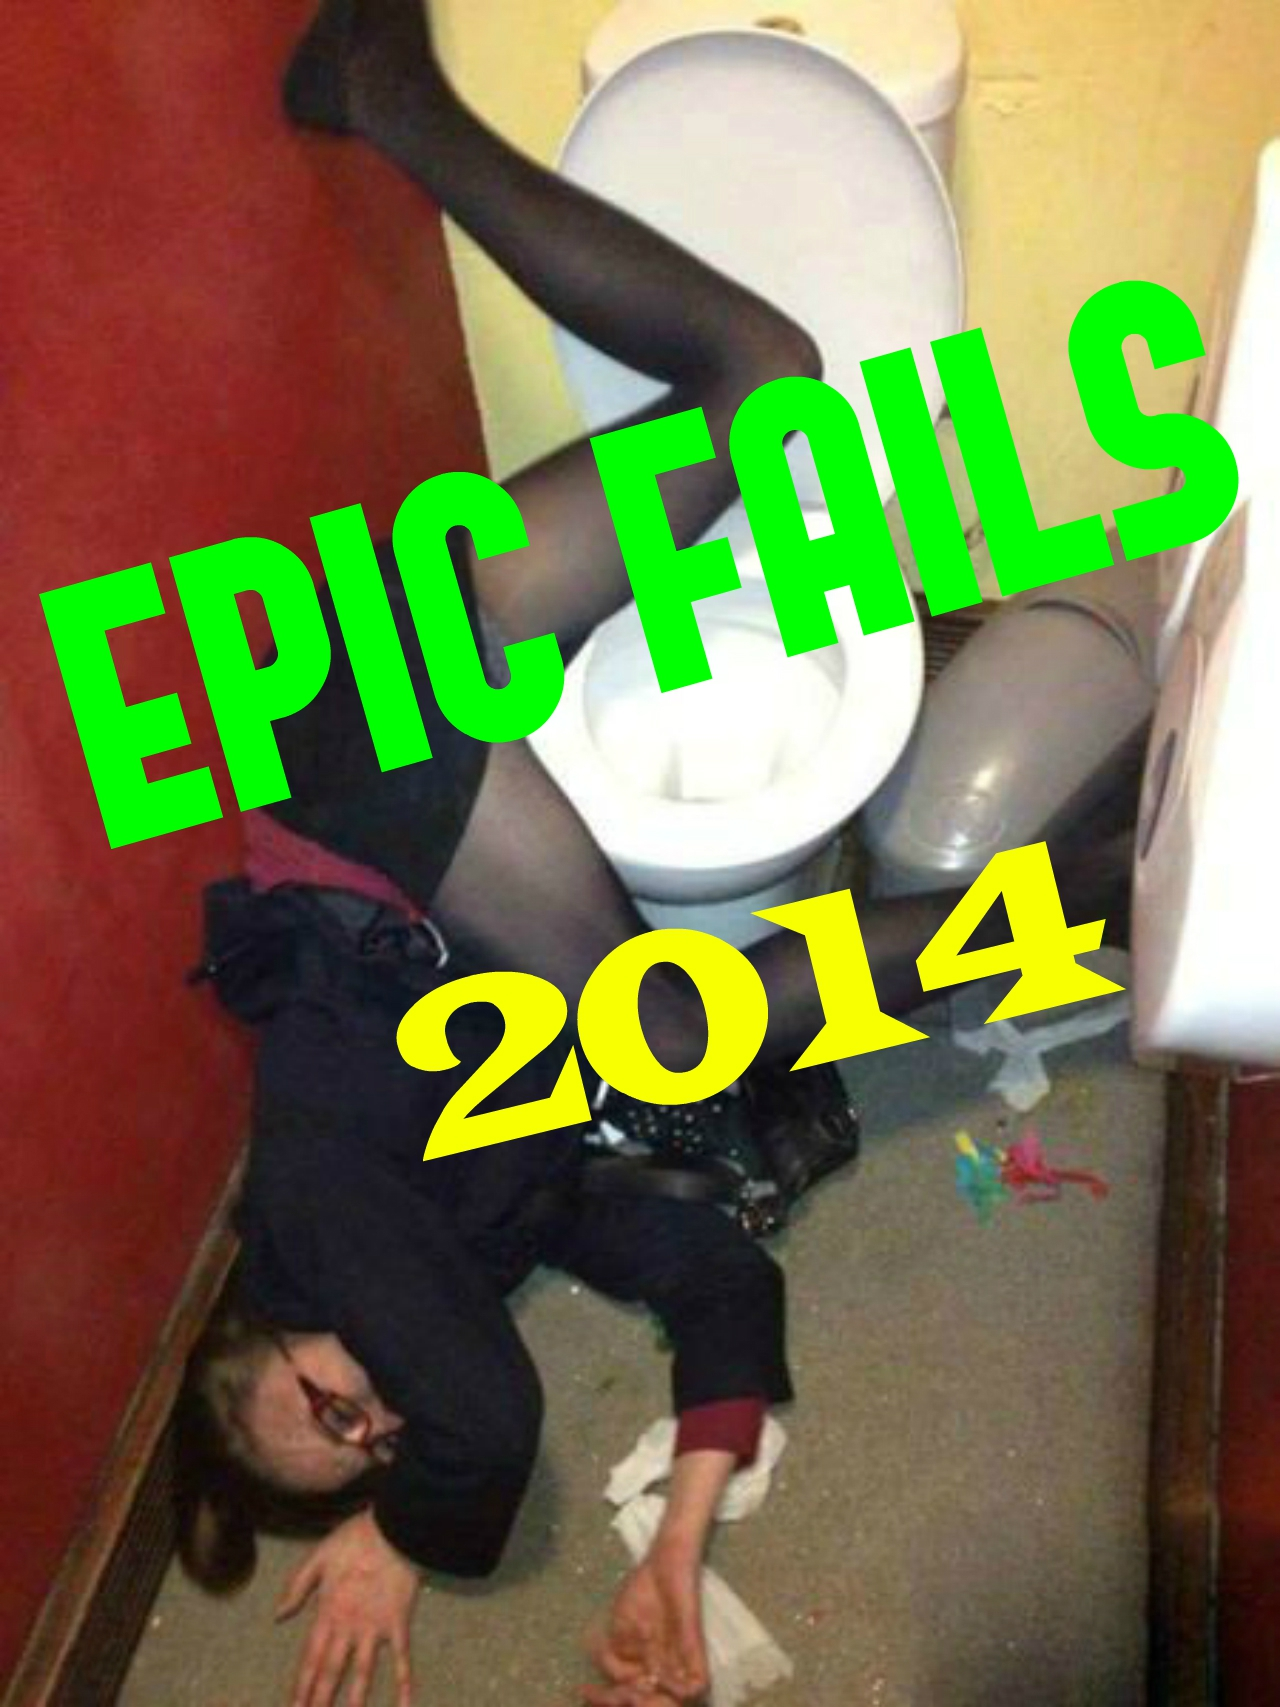 BEST EPIC FAIL /Win Compilation/ FAILS August 2014 # 2 August fails, August fails compilation, Best fails 2014, Funny, comedy, epic, epic fail, epic fails, epic fails august, epic win, fail, fail 2014, fail compilation 2014, fails, fails august, fails compilation August, fails compilation August 2014, funny cat videos, funny cats, funny fail, funny fails, funny moments, funny people, funny pranks, funny video, funny videos, humor, joke, jokes, prank, pranks, ultimate fail compilation, vine, vines, weekly fails, win fails august, youtube videos, Видео приколы, Приколы 2014, видео, подборка неудач, подборка приколов, прикол, приколы, приколы август 2014, ржач, смешное видео, юмор